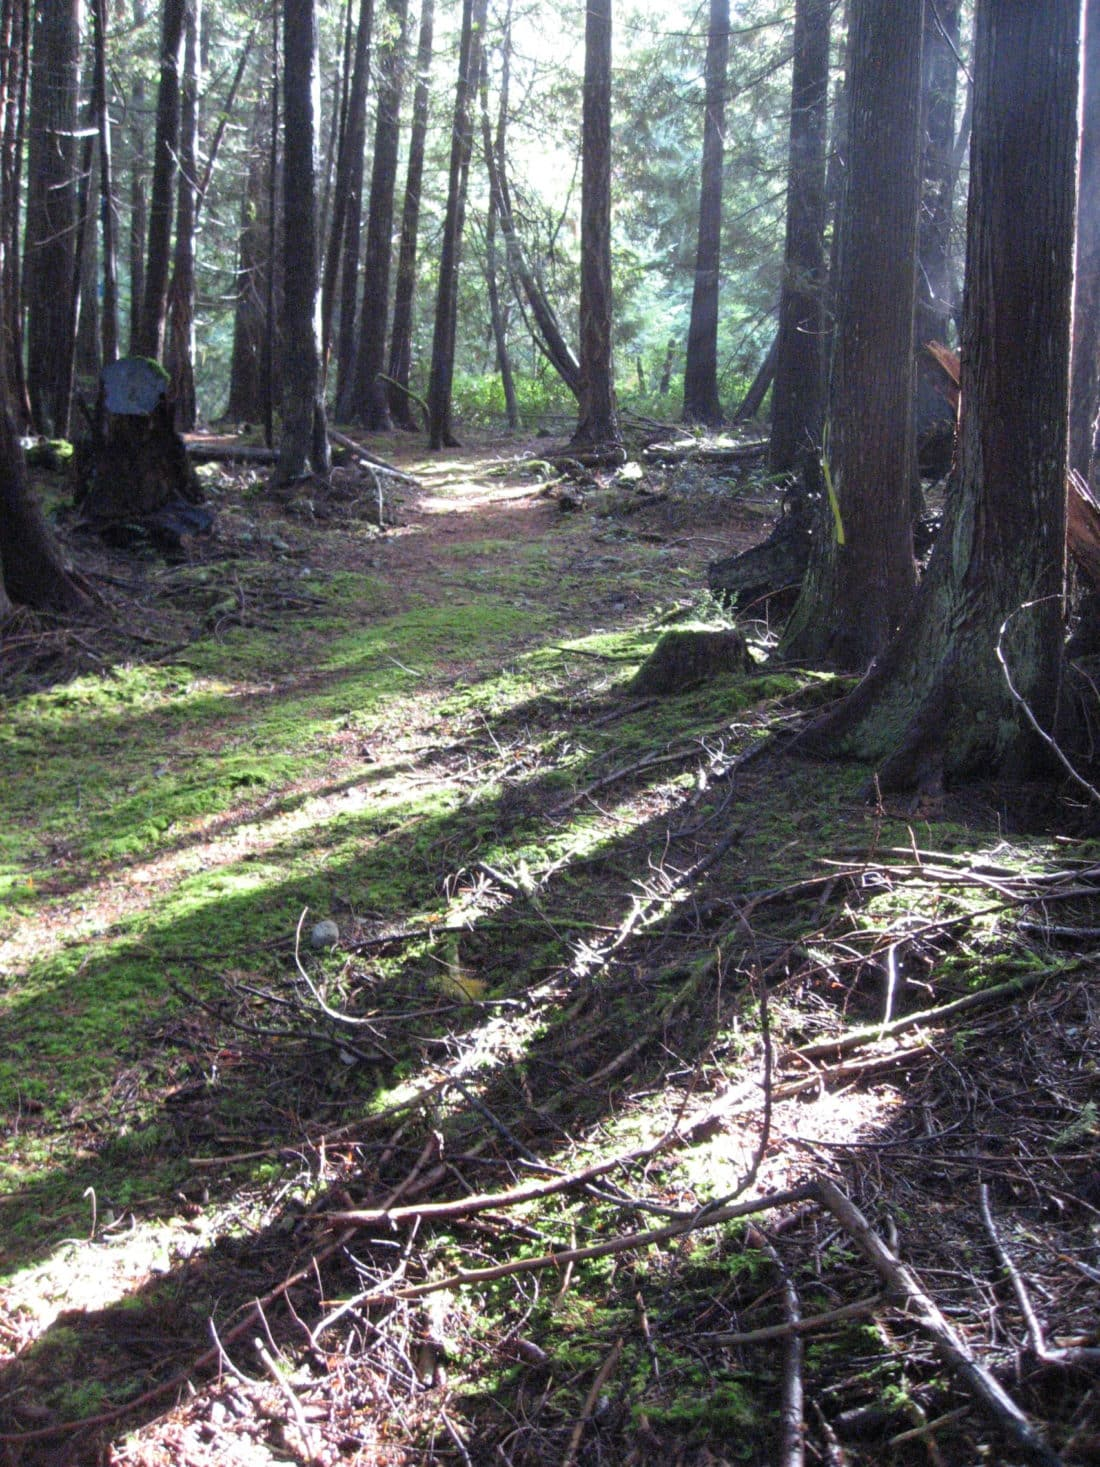 Photo Credit: Path through forest in Squirrel Cove by Roy L Hales